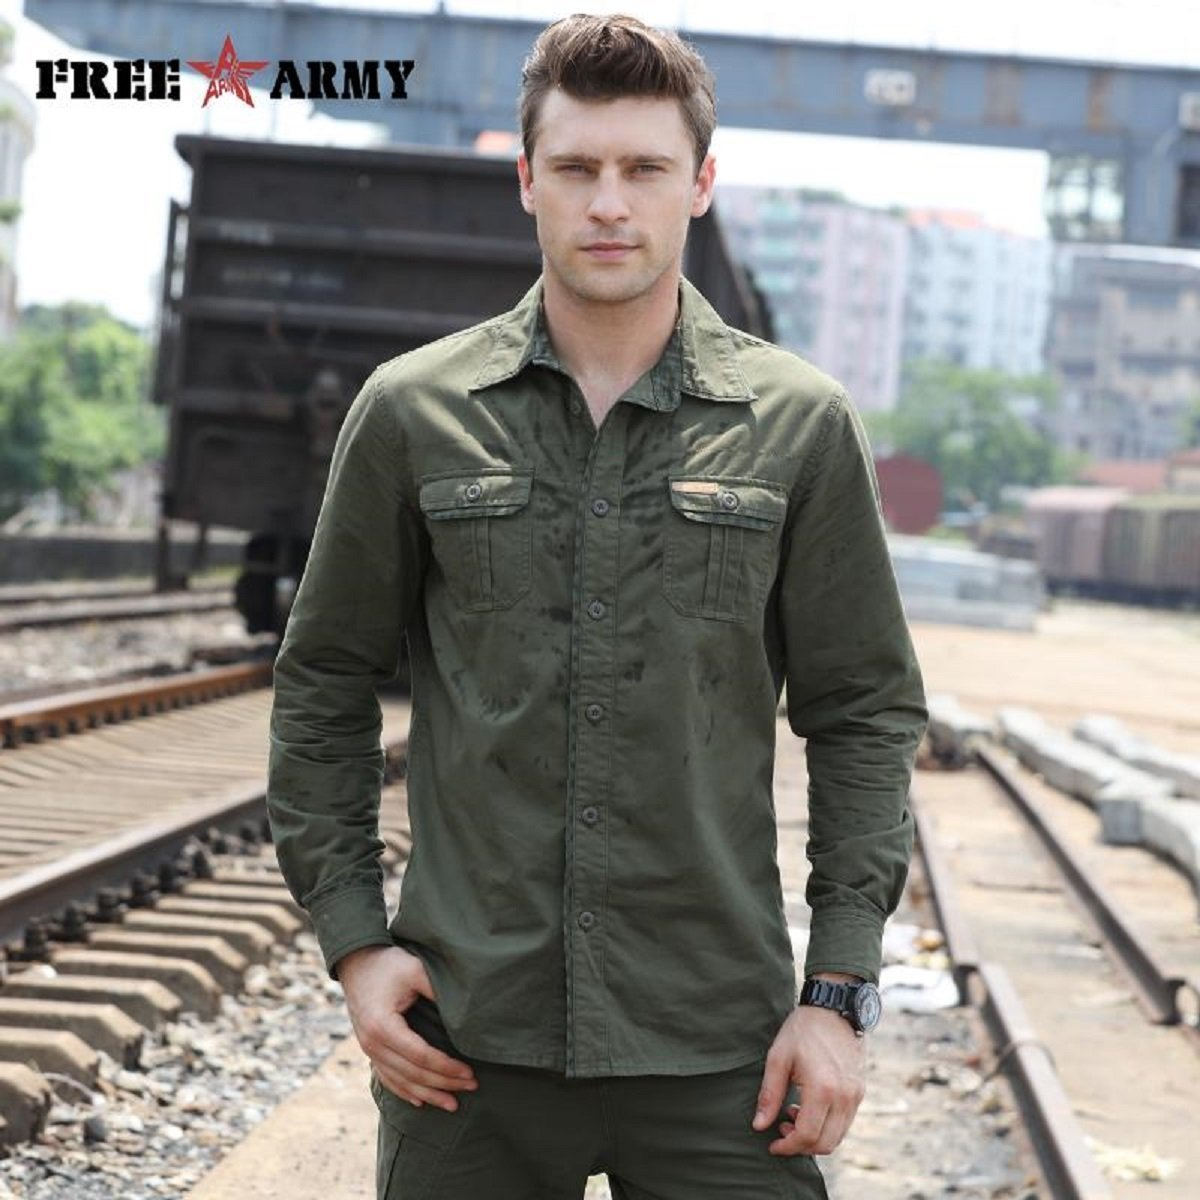 Slim Fit FREE ARMY Casual Long Sleeve Army Green